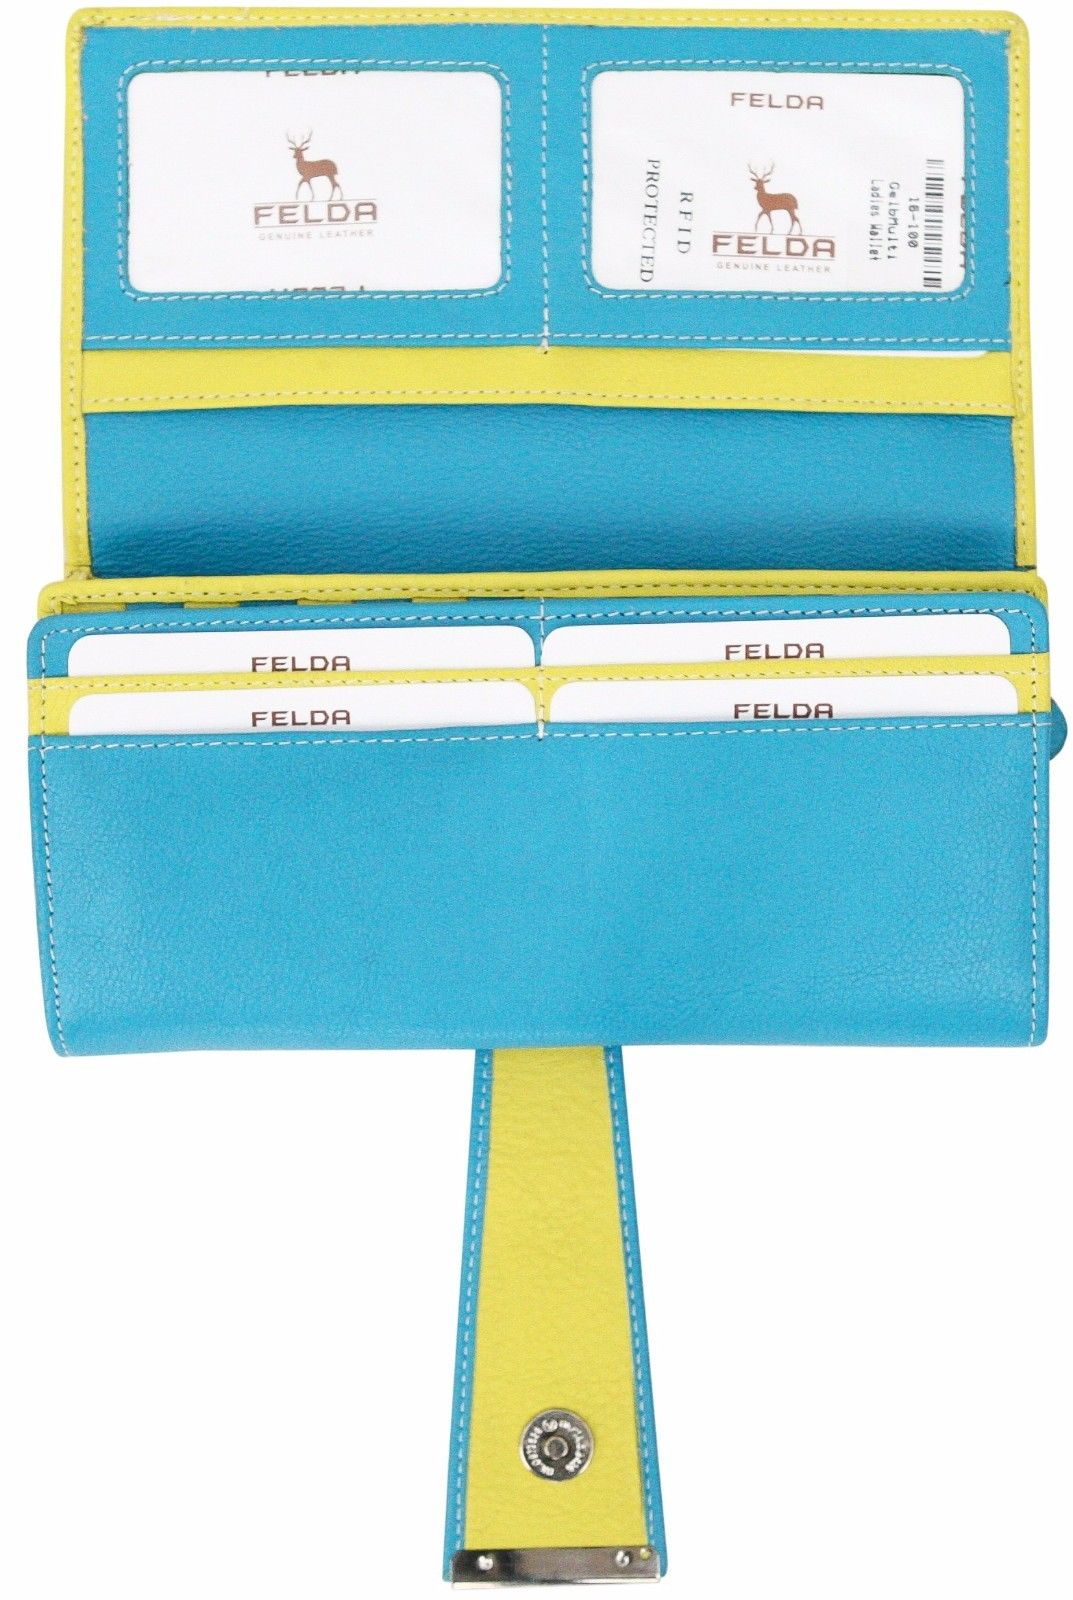 Felda-RFID-Ladies-Leather-Soft-Wallet-Large-Capacity-Purse-Womens-Multi-24-Card miniatuur 28